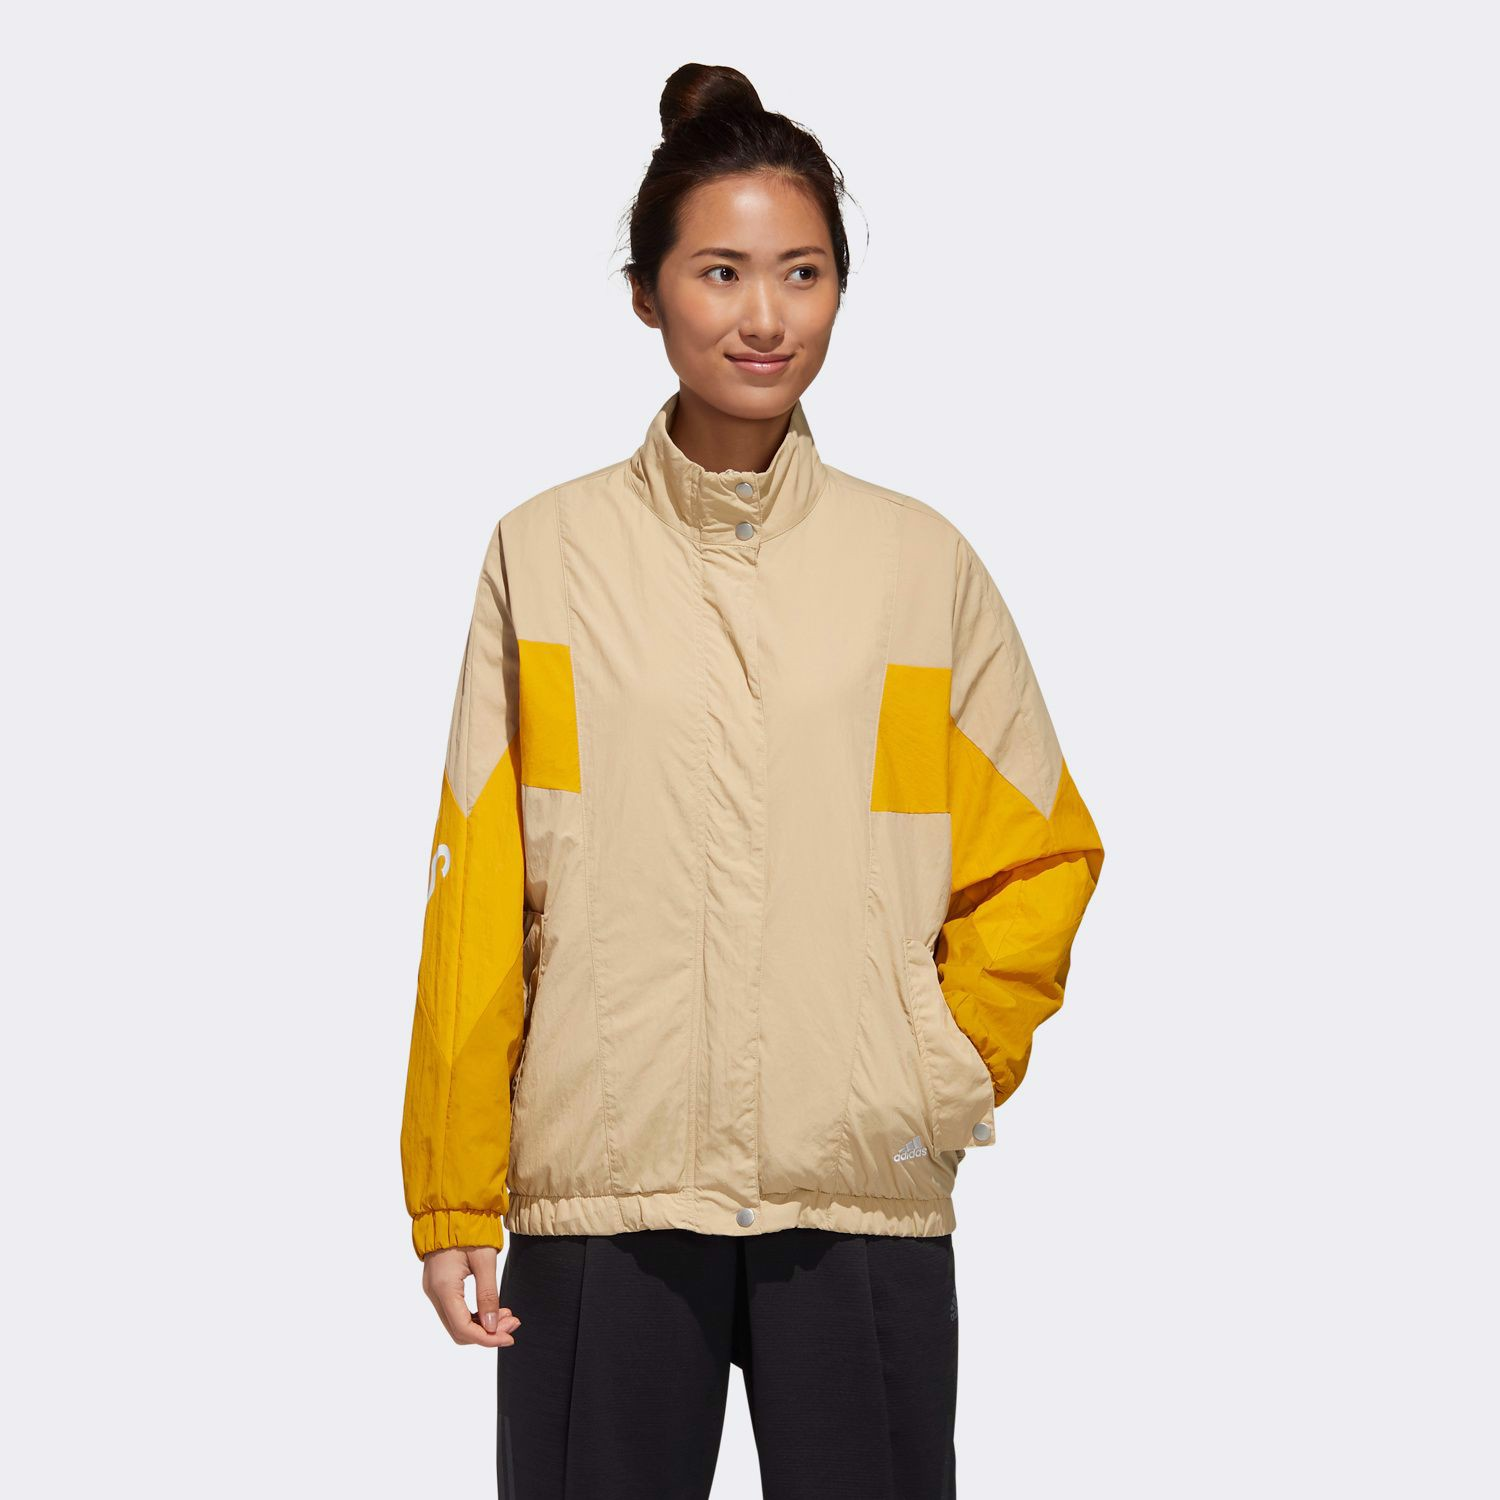 adidas Must Haves Three Stripes Wording Woven Jacket - Beige/Yellow